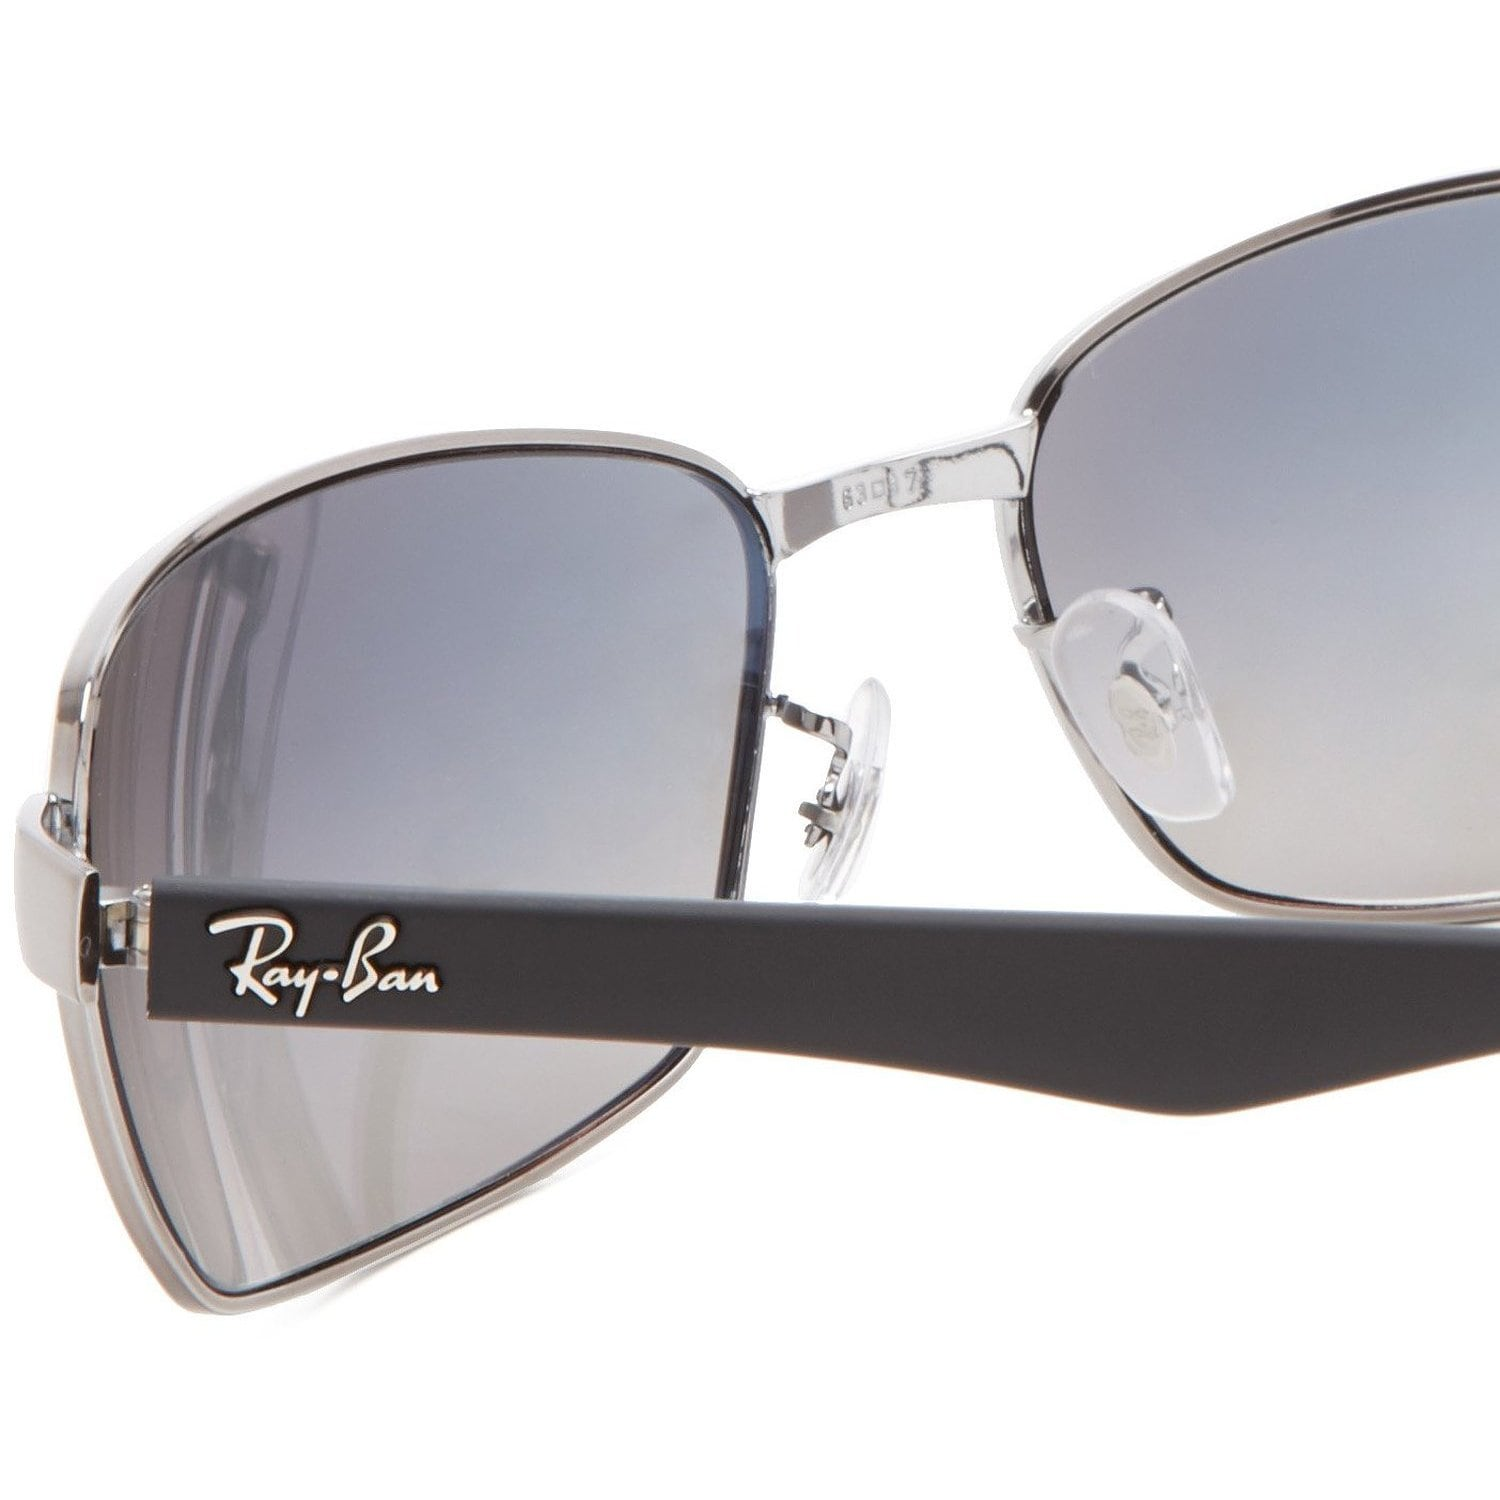 50e200c1d9f Shop Ray-Ban RB3478 004 78 Gunmetal Black Frame Polarized Blue Grey  Gradient 63mm Lens Sunglasses - Free Shipping Today - Overstock - 14442251